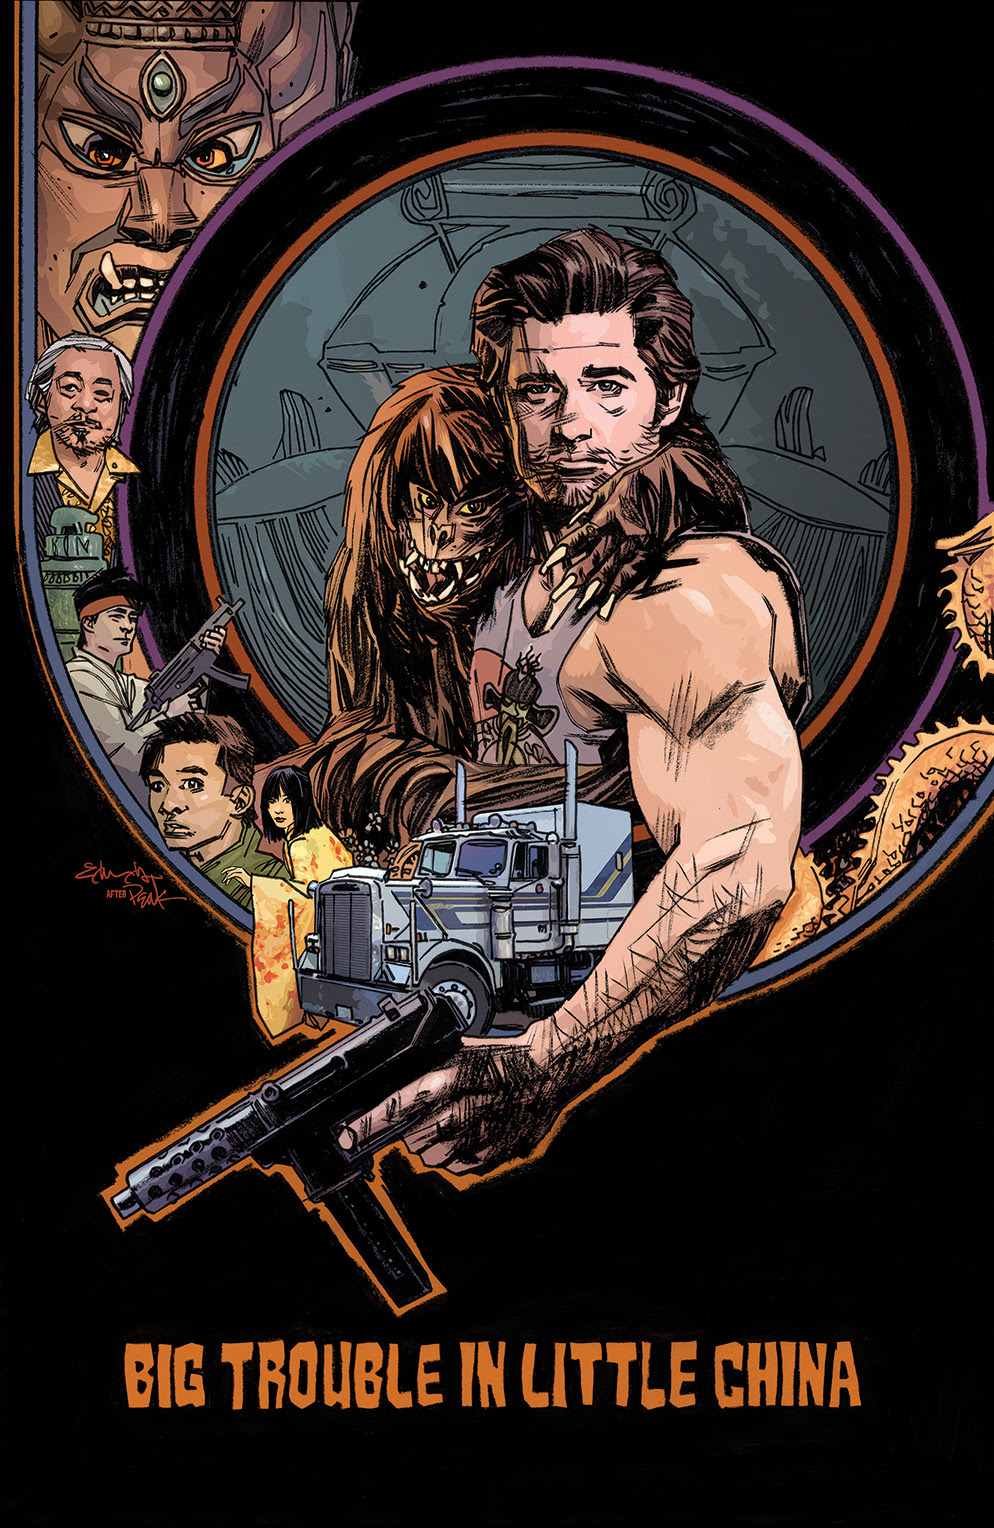 BIG TROUBLE IN LITTLE CHINA #3 Cover C by Tommy Lee Edwards